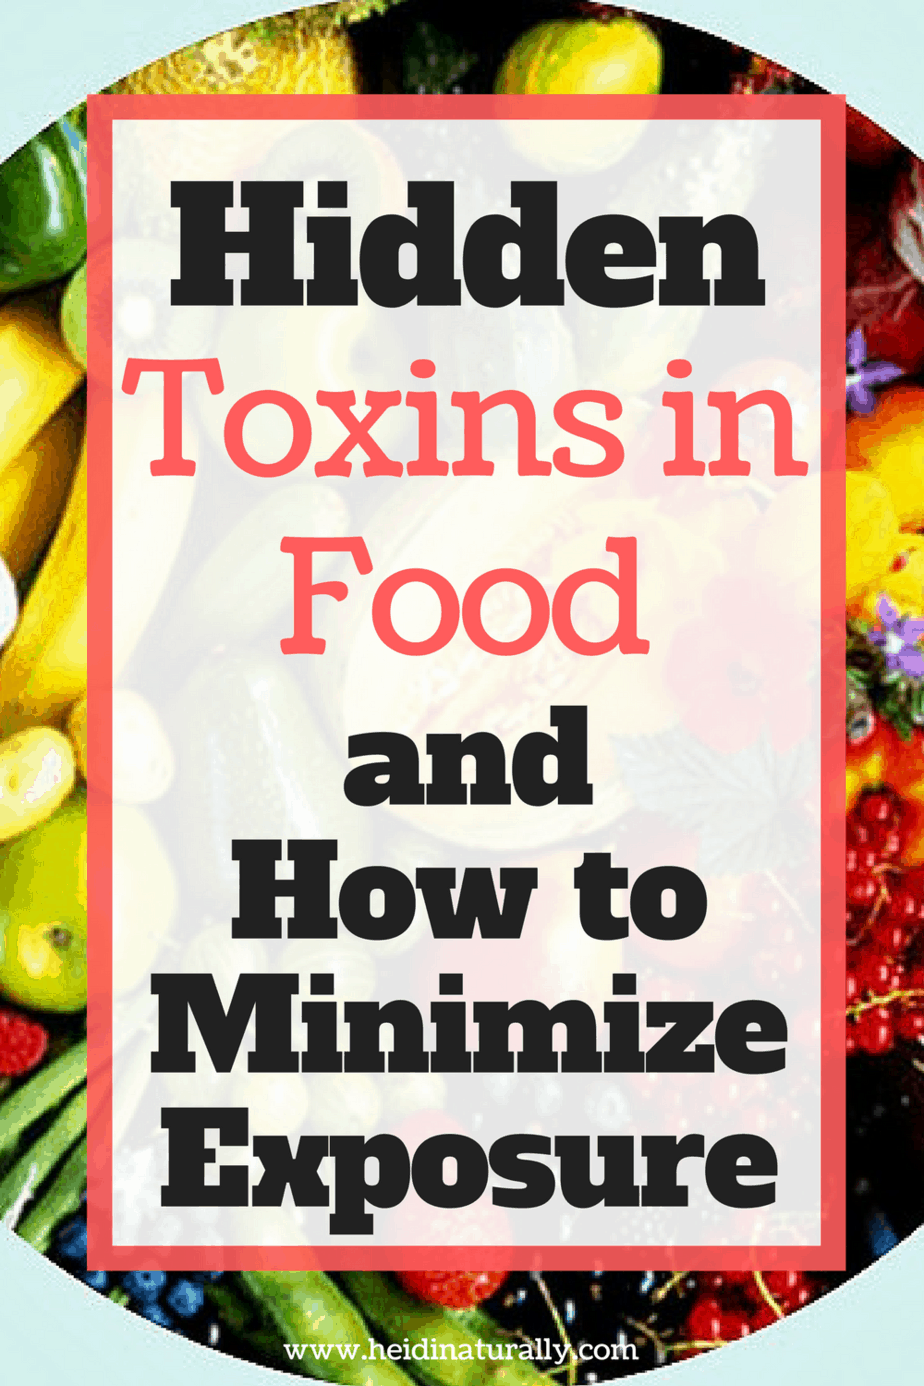 Find out what food toxins are most dangerous and why. Learn why we have toxins and what to do about them without spending a fortune.